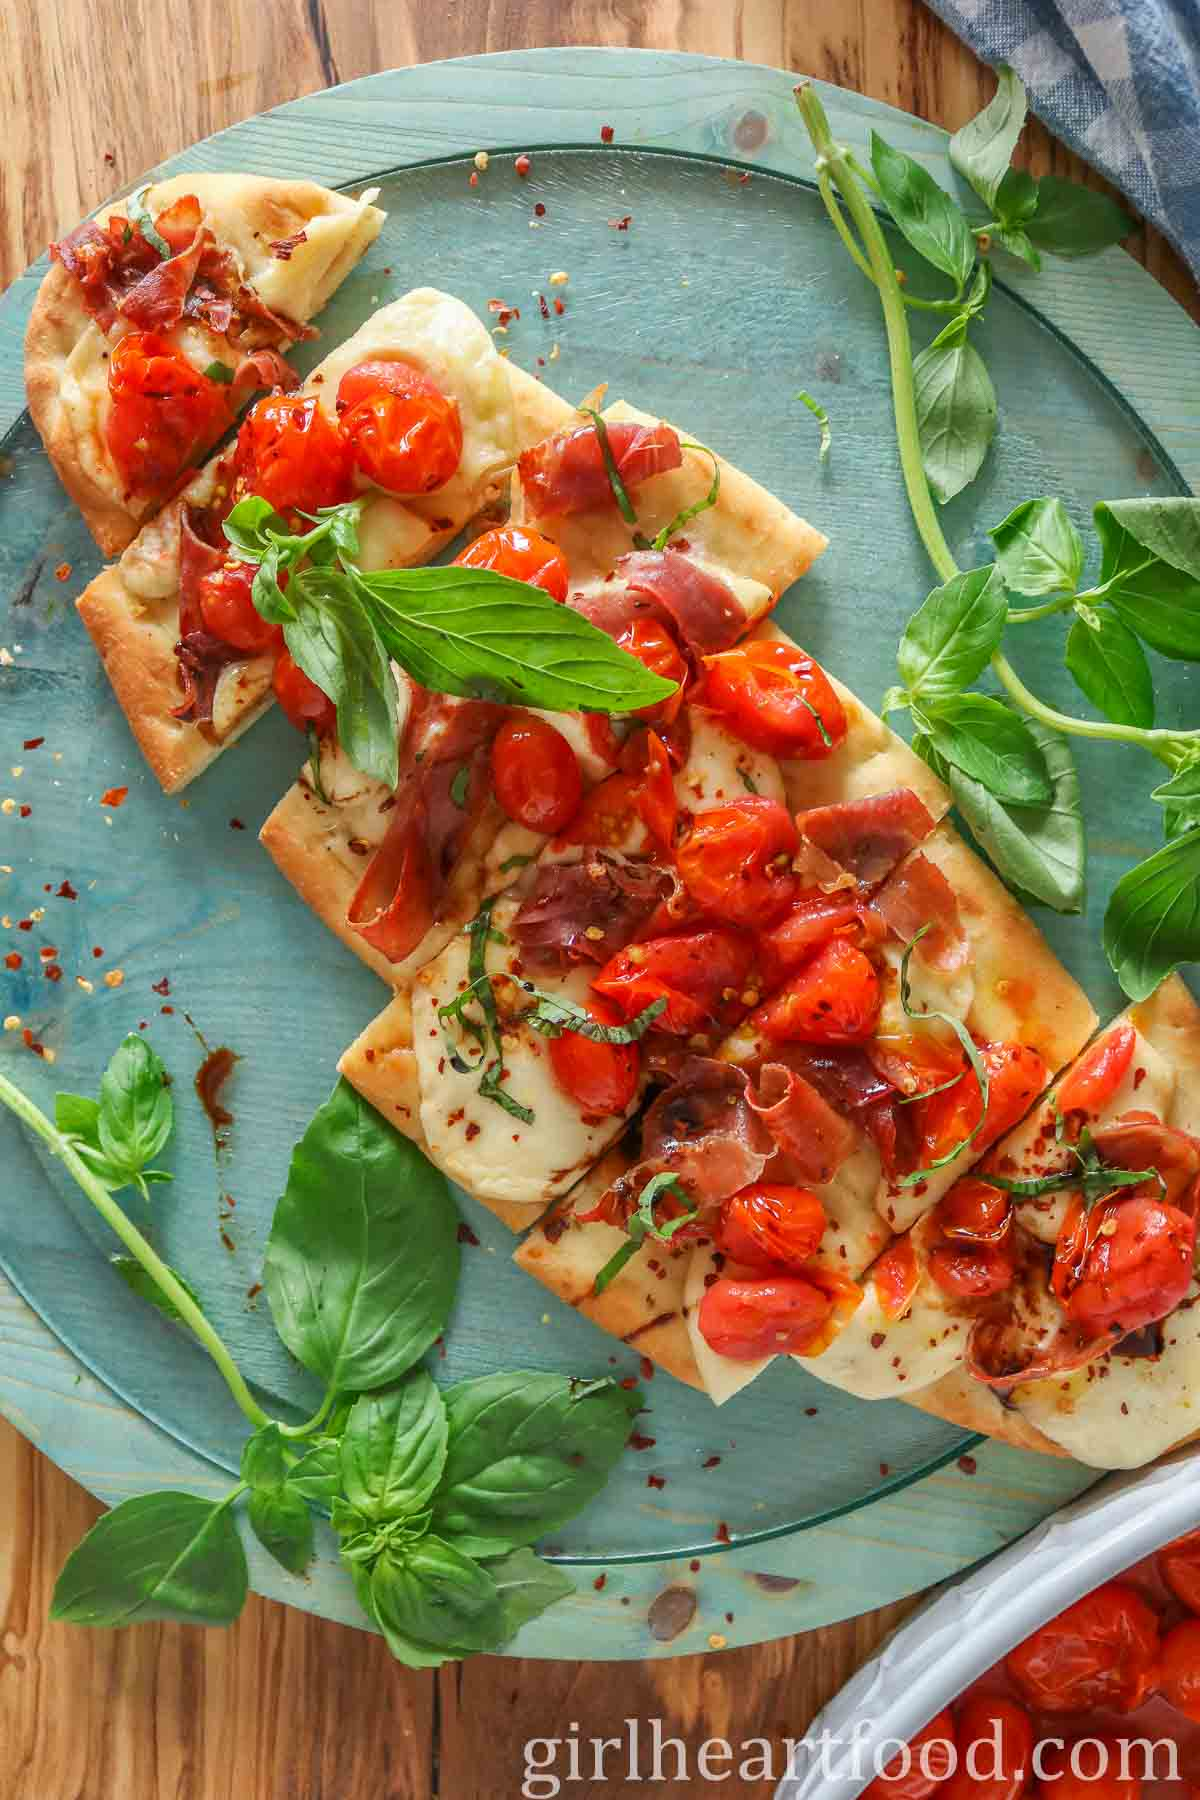 Tomato and prosciutto flatbread pizza, cut into pieces, with basil on either side of it.